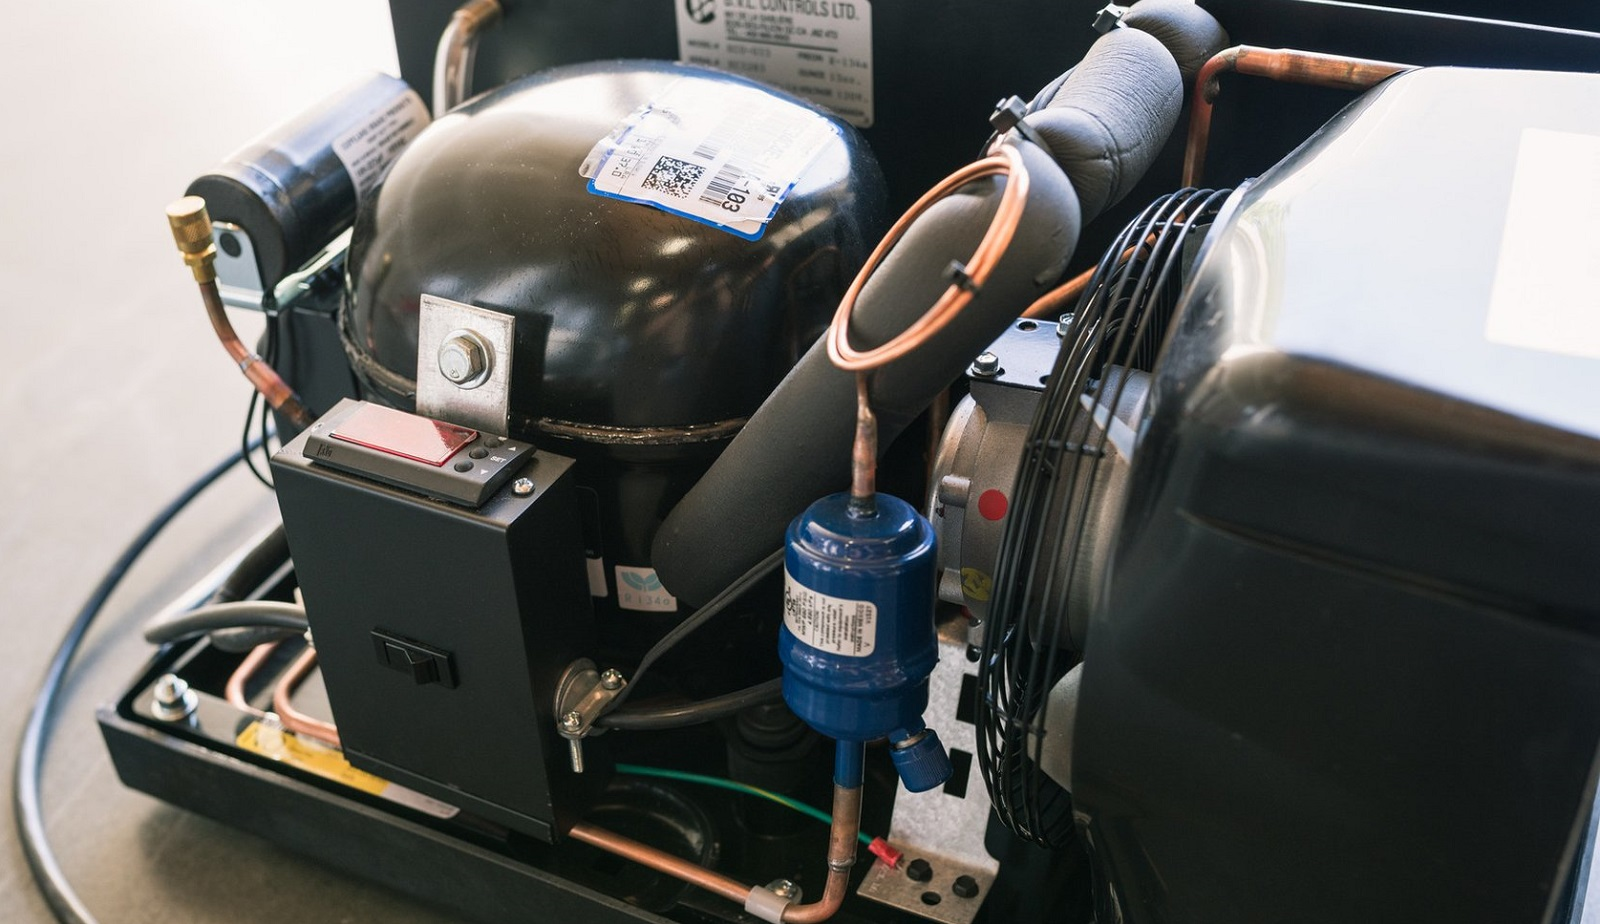 A solution of 1/3 propylene glycol and 2/3 water is placed in the 3 gallon reservoir and kept cold by a copper refrigerant line. Small pumps submersed in ...